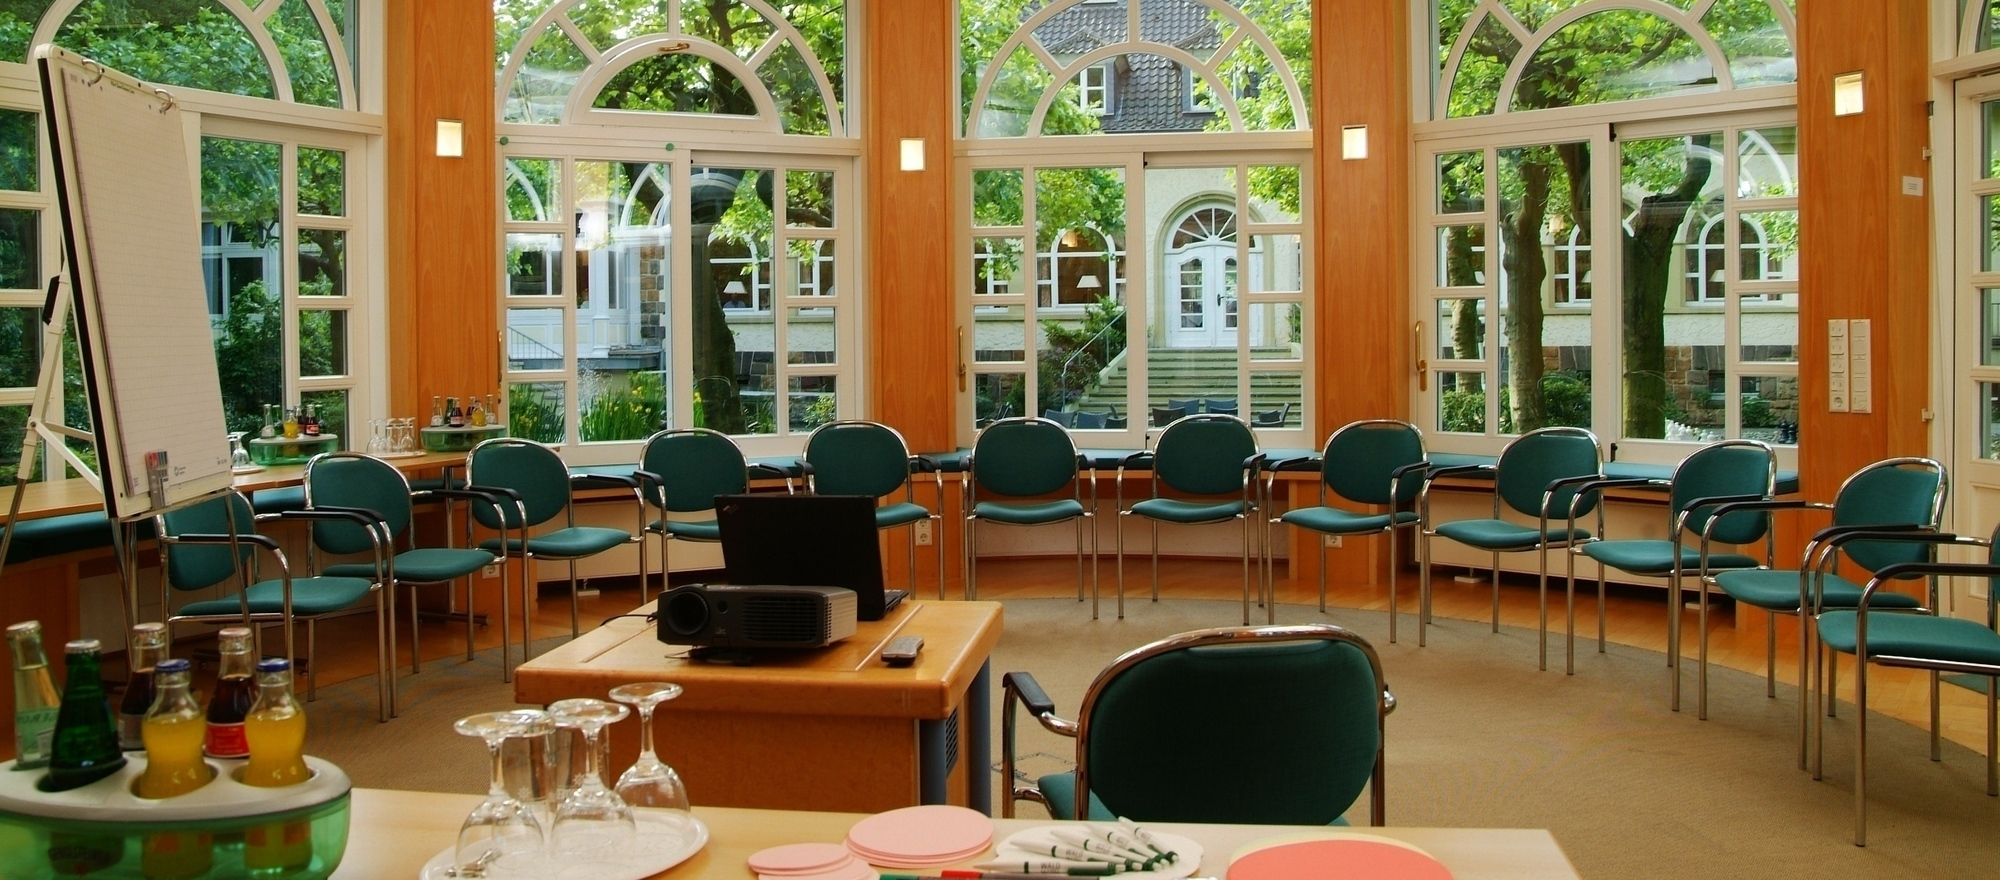 Meetings in green surrounding in the pavilion of the 4-star Ringhotel Waldhotel Heiligenhaus in Heiligenhaus